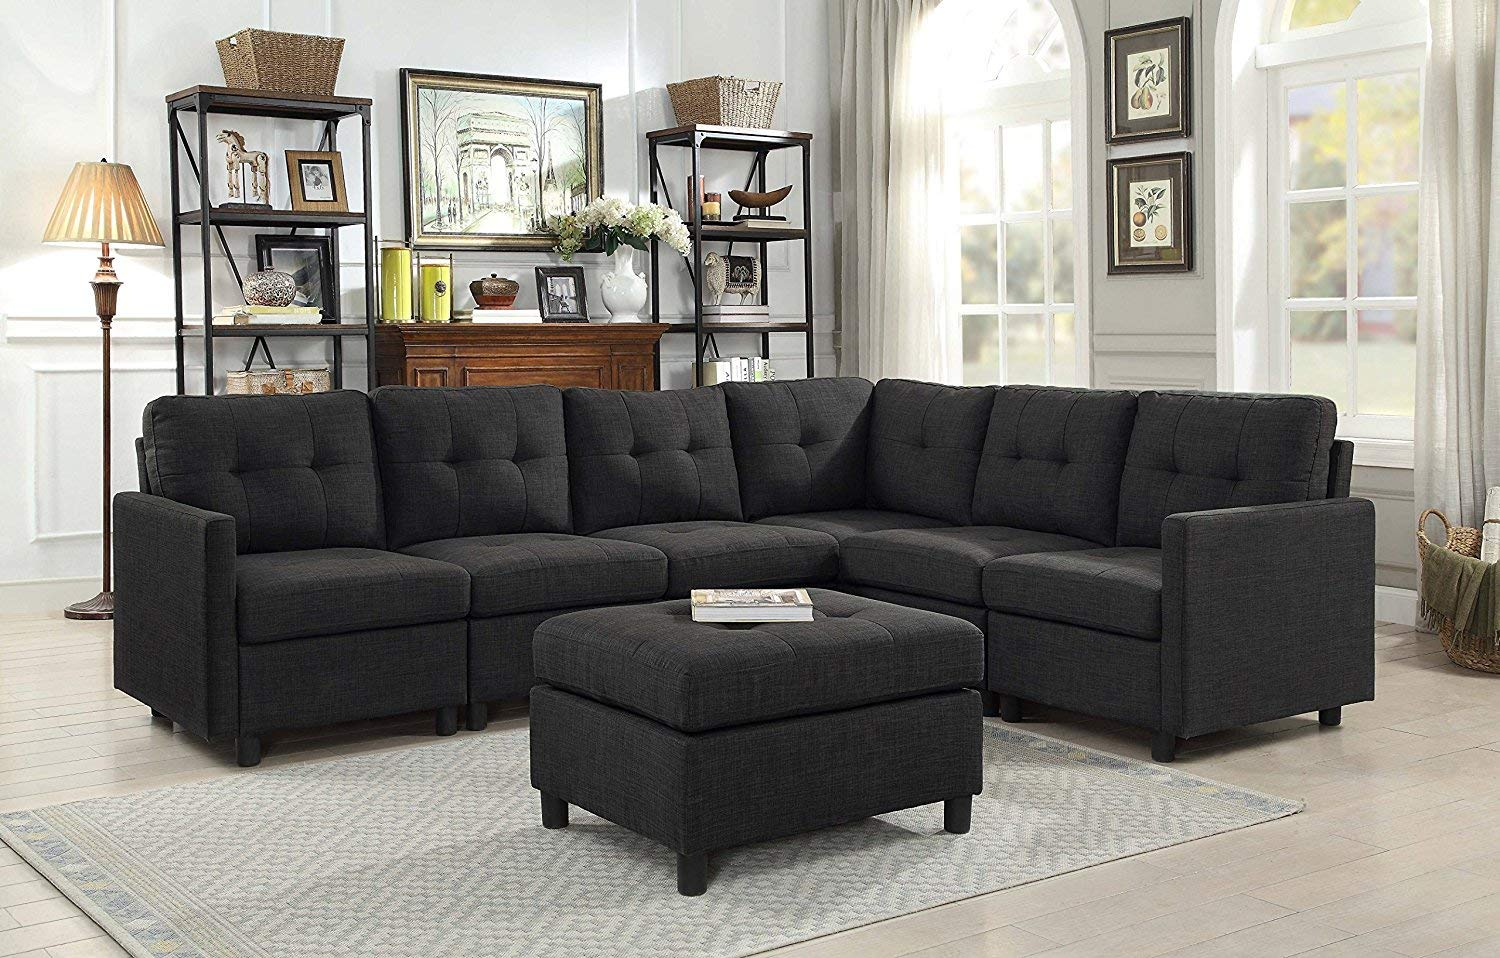 Awe Inspiring Bridge Modular Sectional Sofa Assemble 7 Piece Modular Sectional Sofas Bundle Set Cushions Easy To Assemble Left Right Arm Chair Armless Chair Gmtry Best Dining Table And Chair Ideas Images Gmtryco